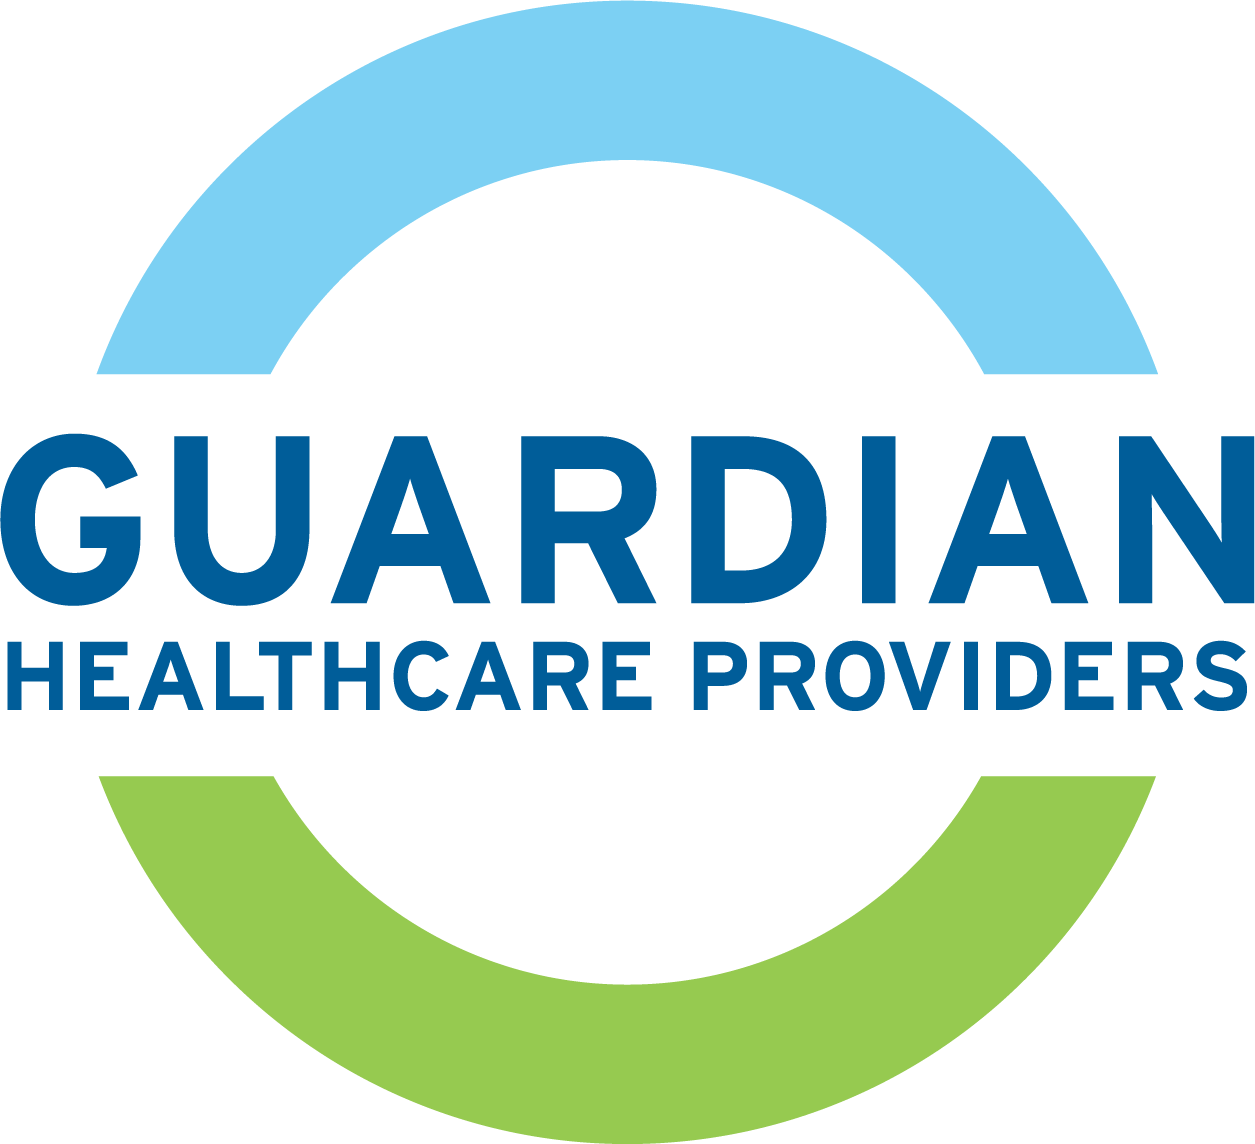 Guardian Healthcare Providers logo